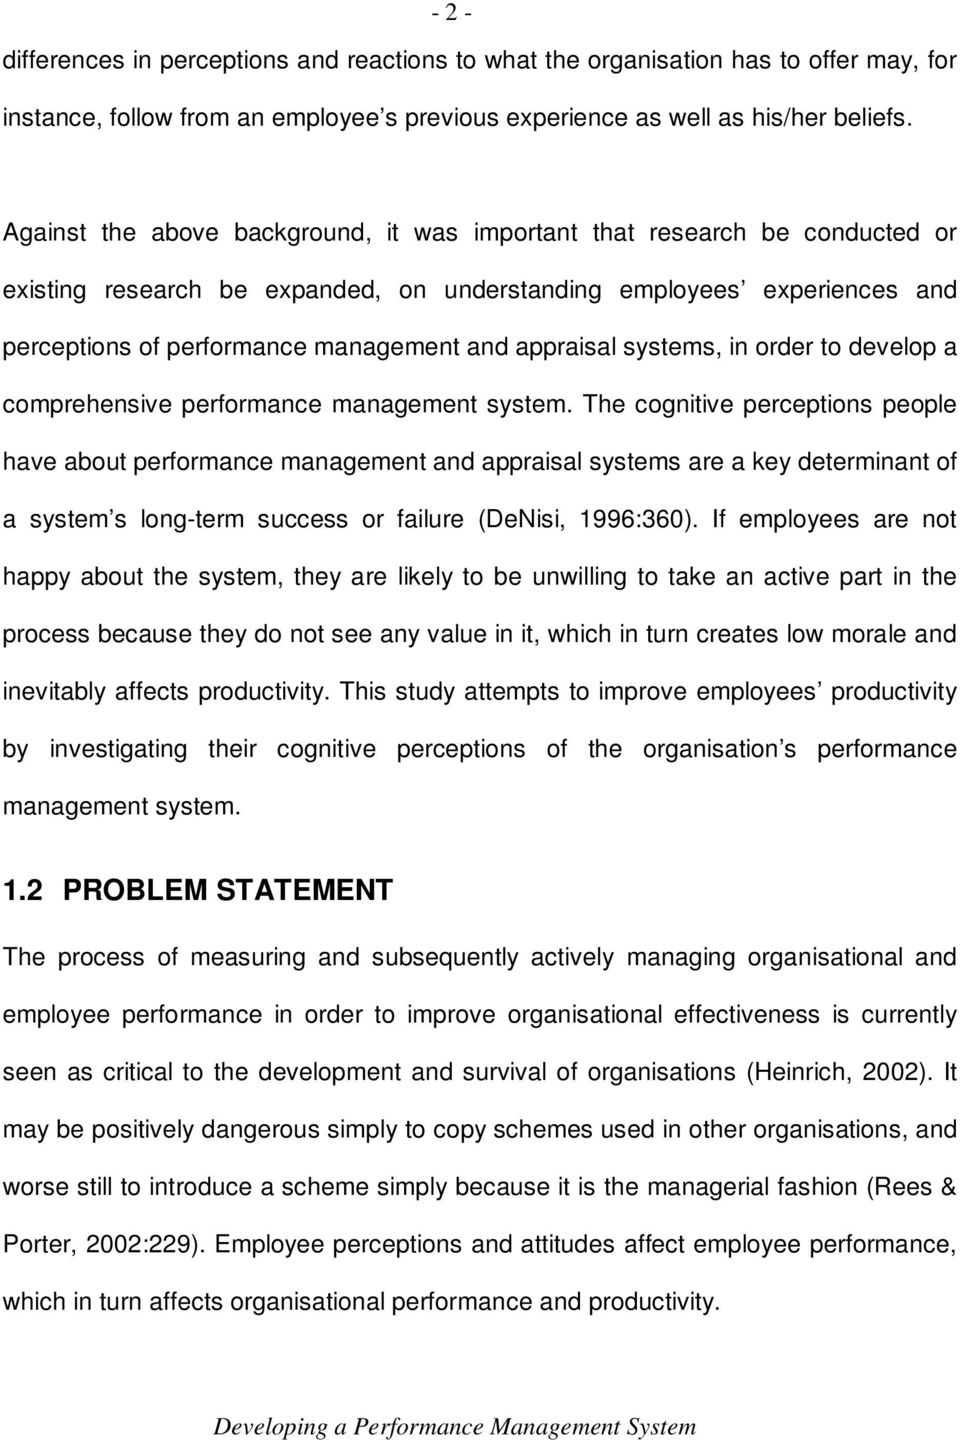 appraisal systems, in order to develop a comprehensive performance management system.